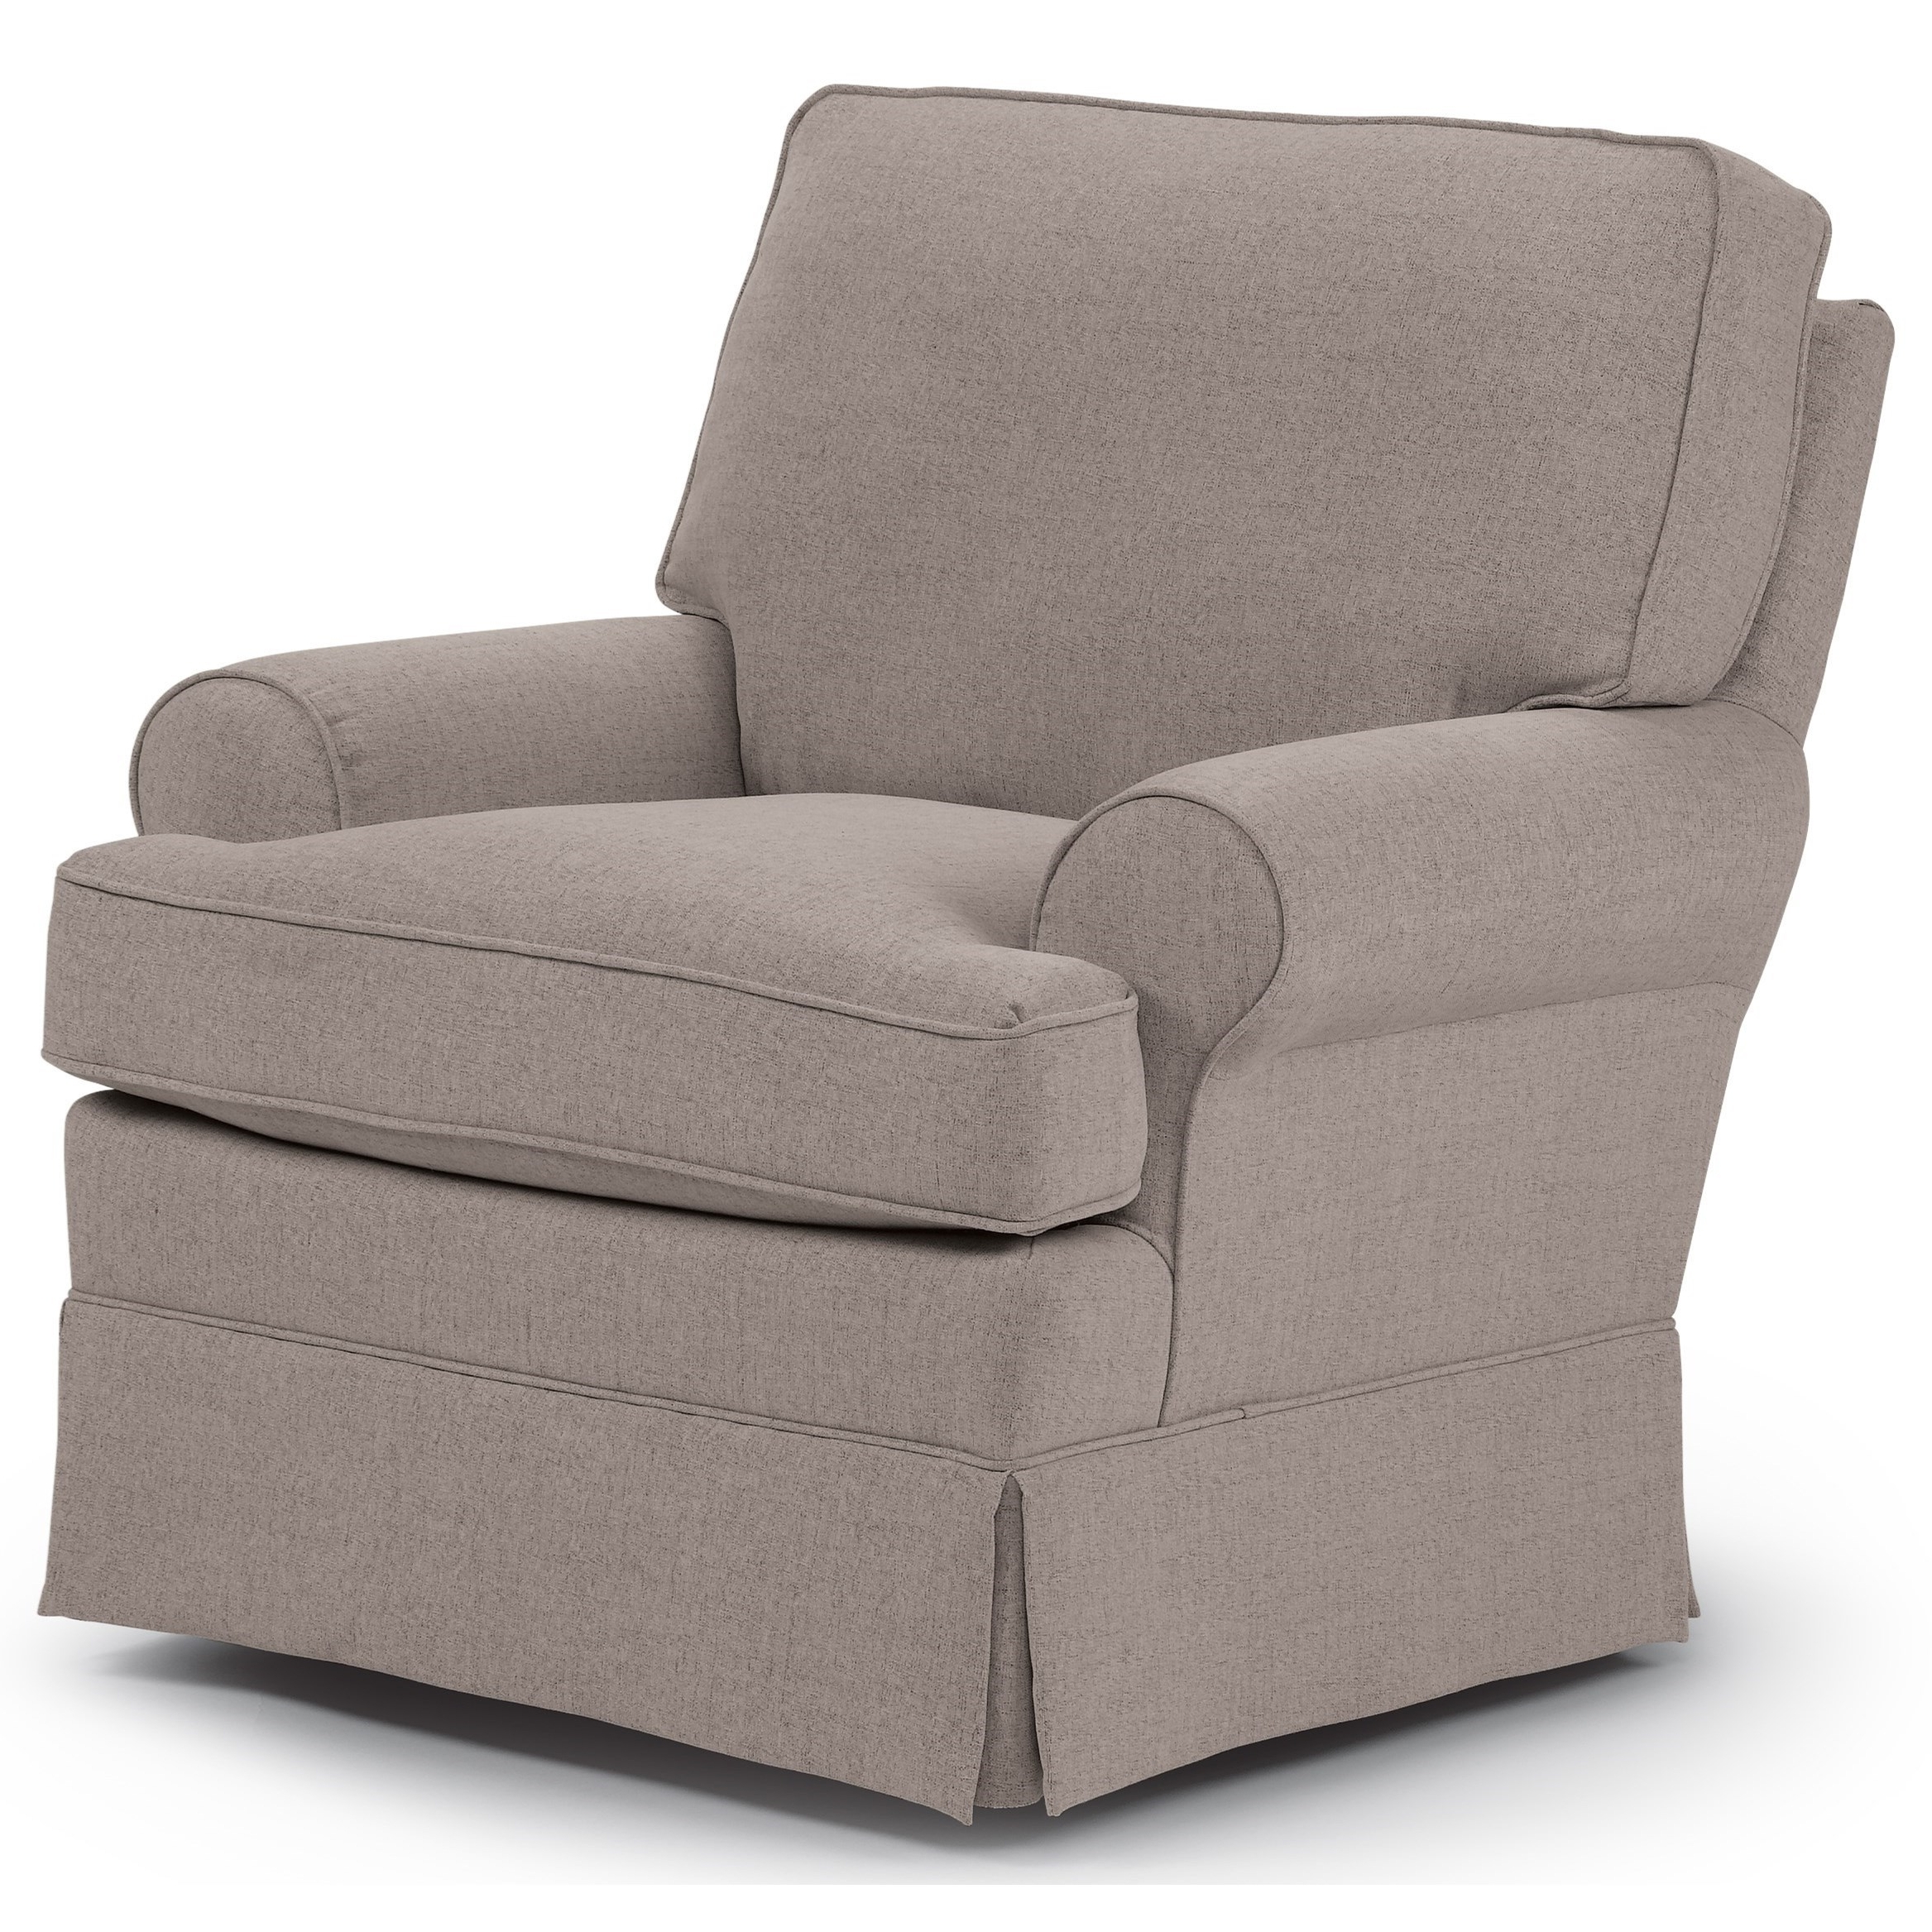 Swivel Rocking Chairs Within Well Liked Best Home Furnishings Swivel Glide Chairs Quinn Swivel Glider Chair (View 13 of 15)